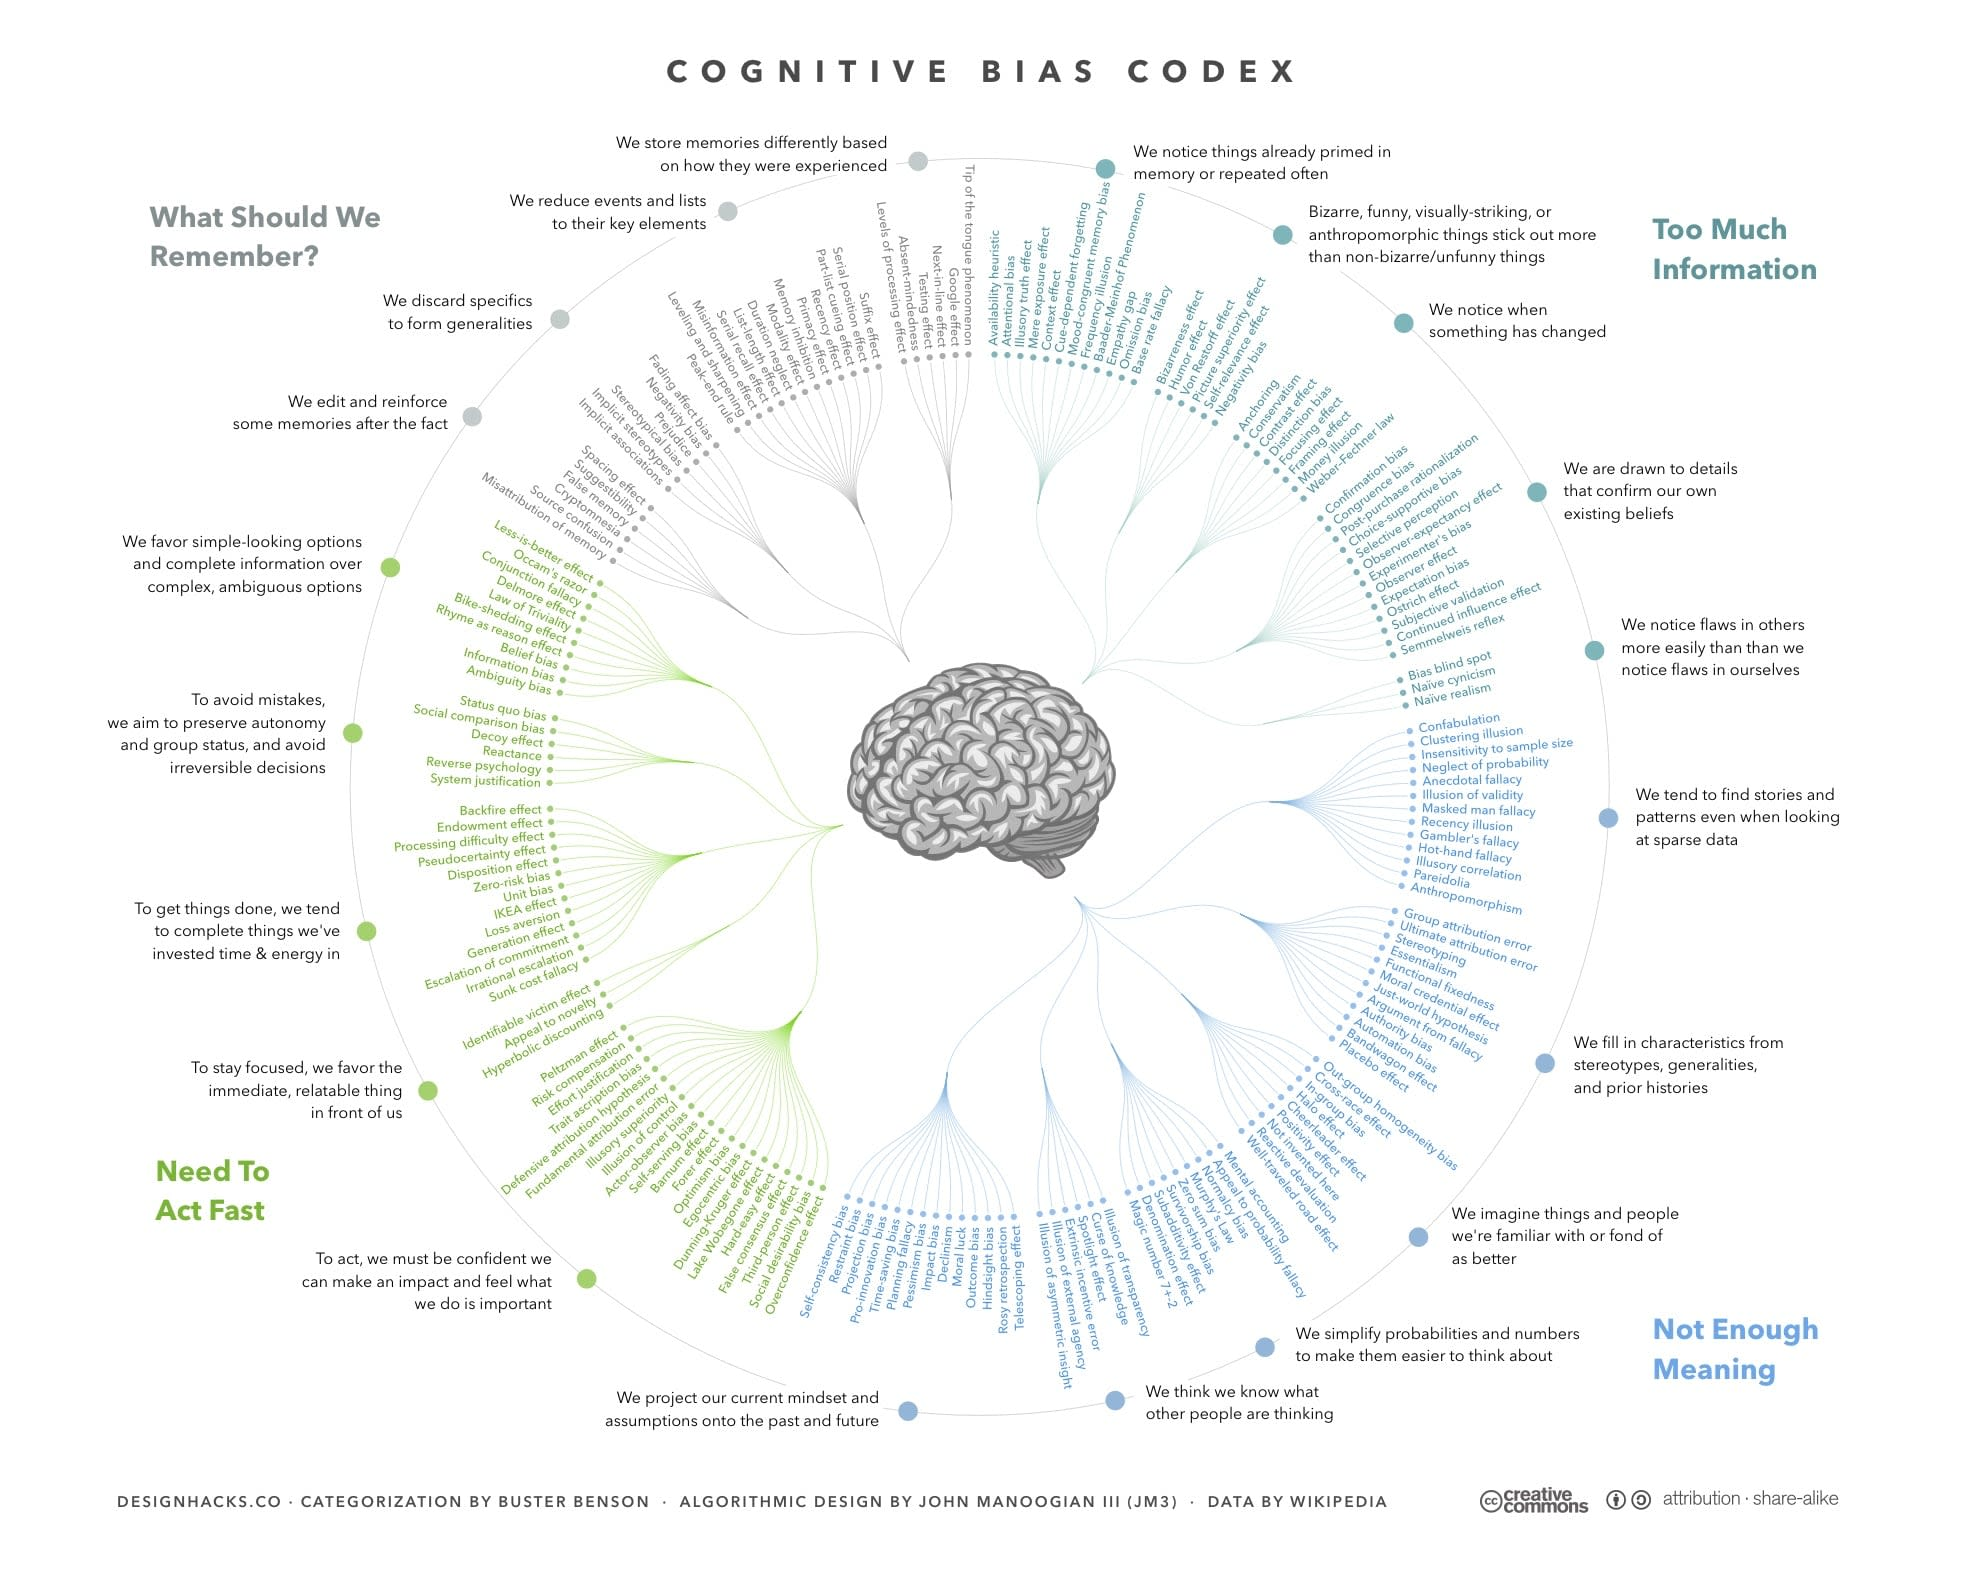 An infographic of cognitive biases